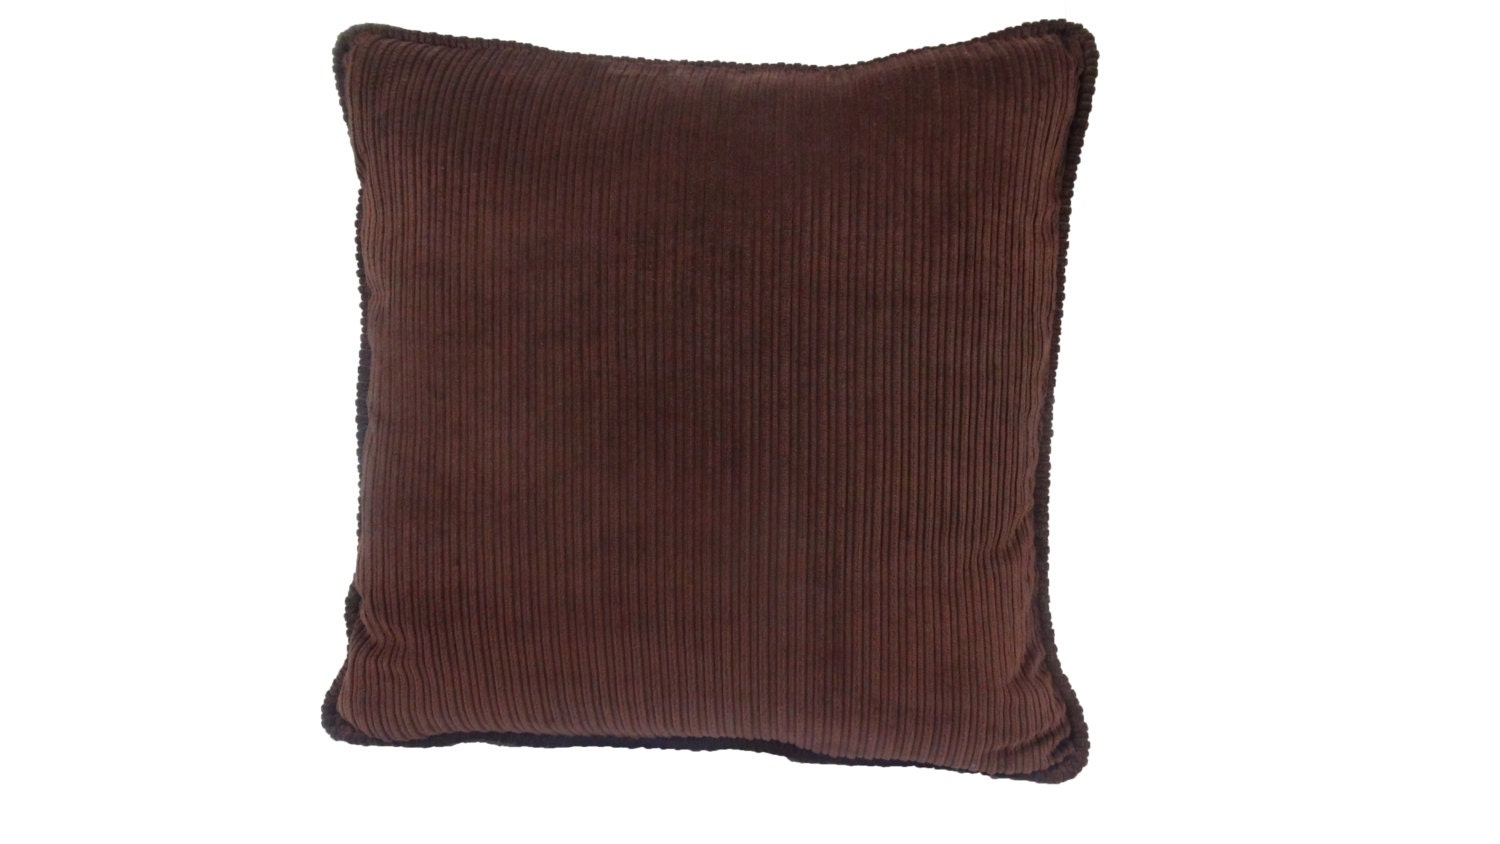 Brown Corduroy Throw Pillow : Brown Wide Wale Corduroy 20 inch Pillow accent pillow throw